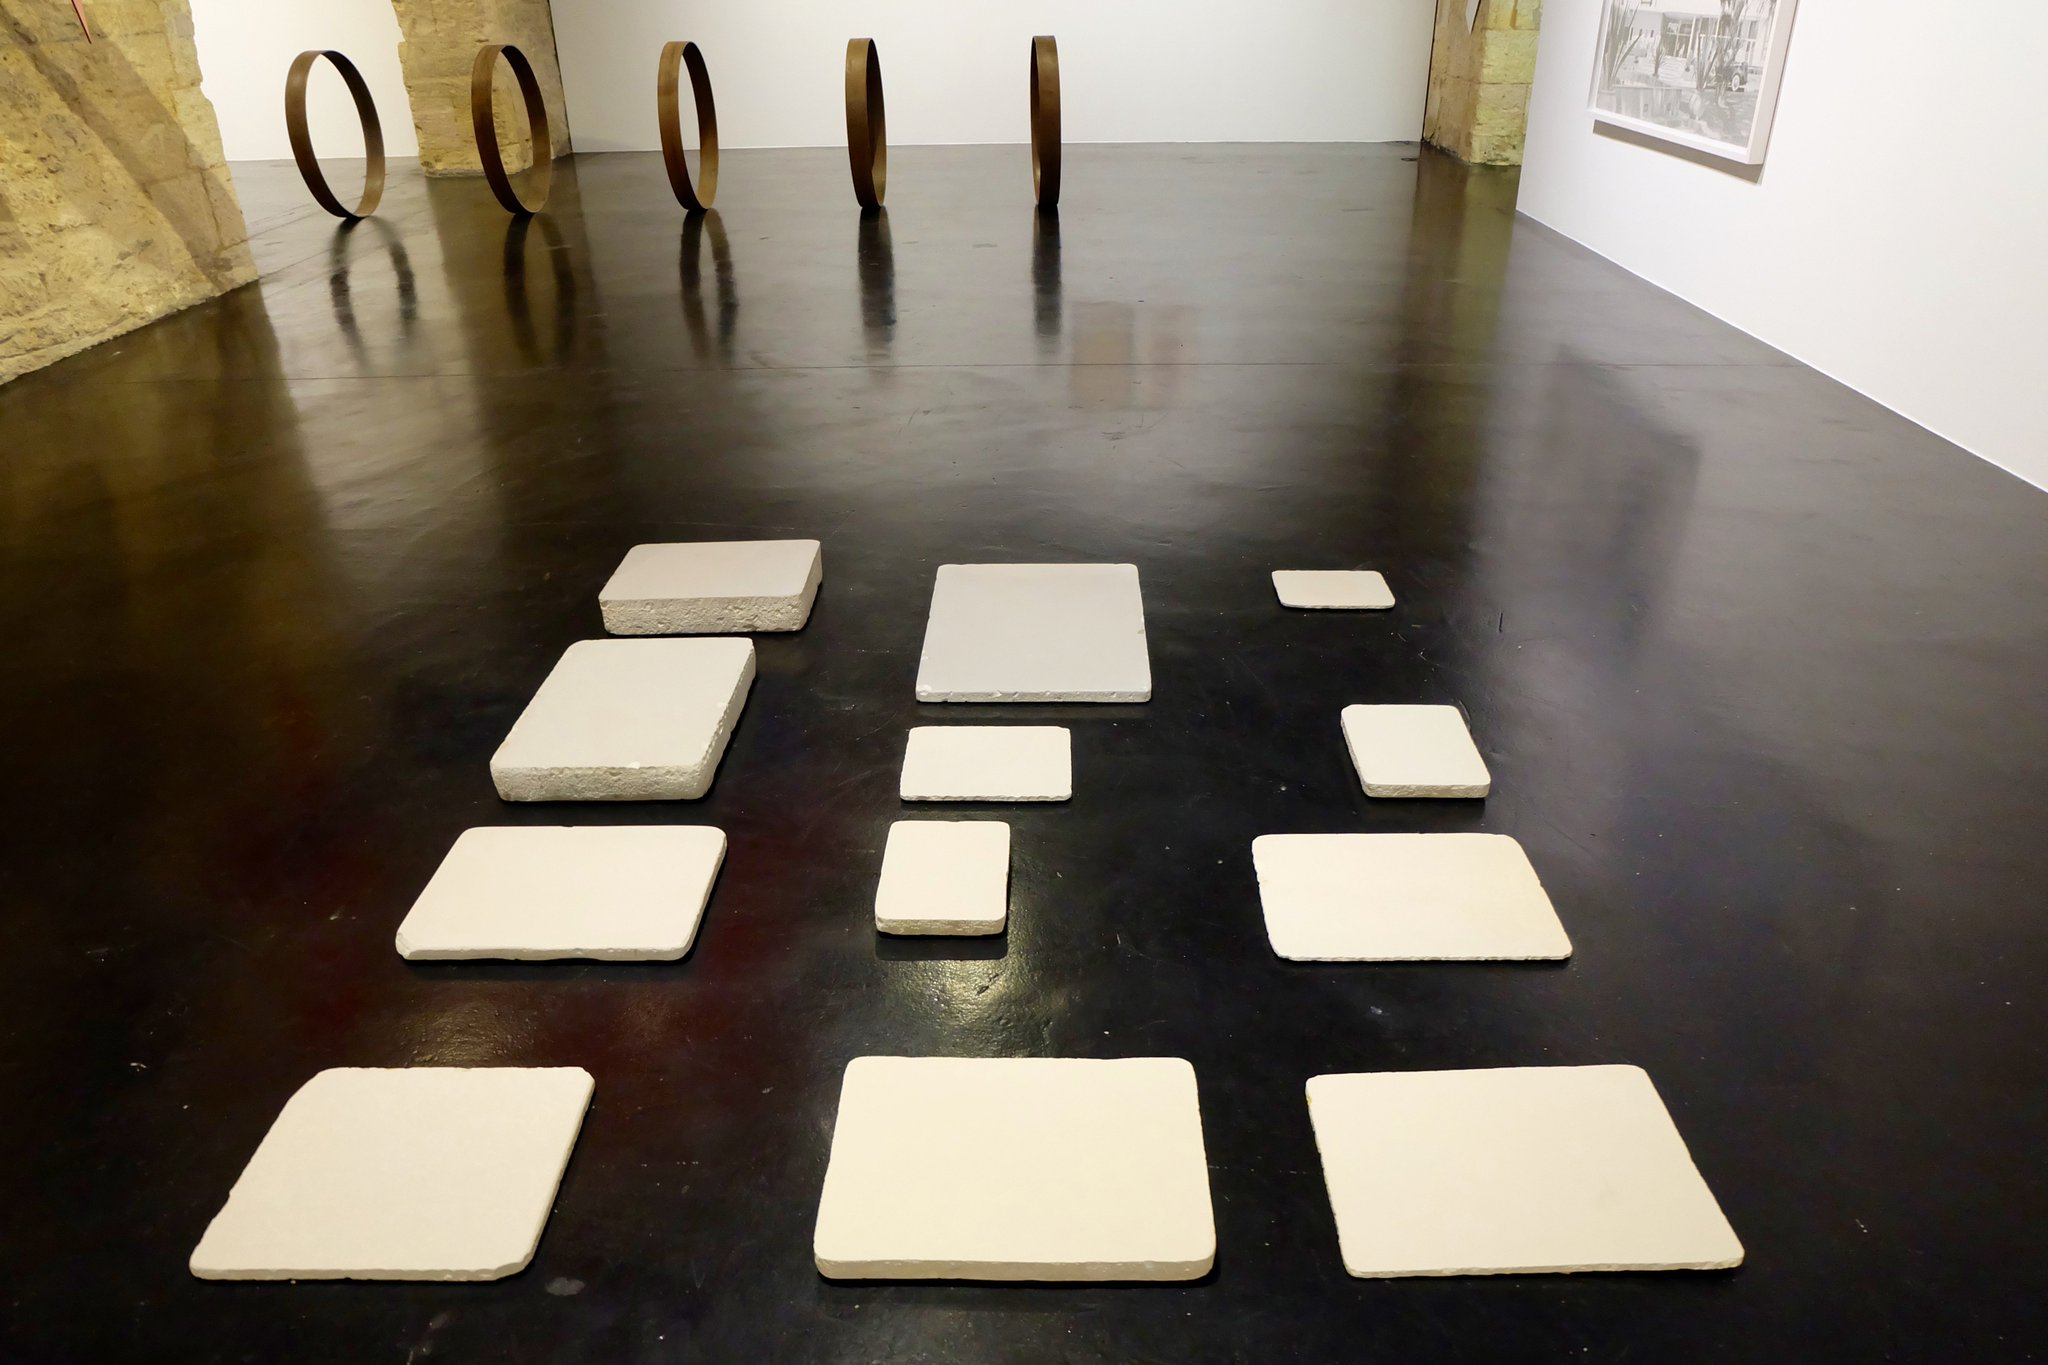 """#MartínLlavaneras' """"Touchpad"""" (2016) stone slabs used for lithography. As printers closed discarded slabs were used as paving #4543billion https://t.co/Ke3E1scRuS"""